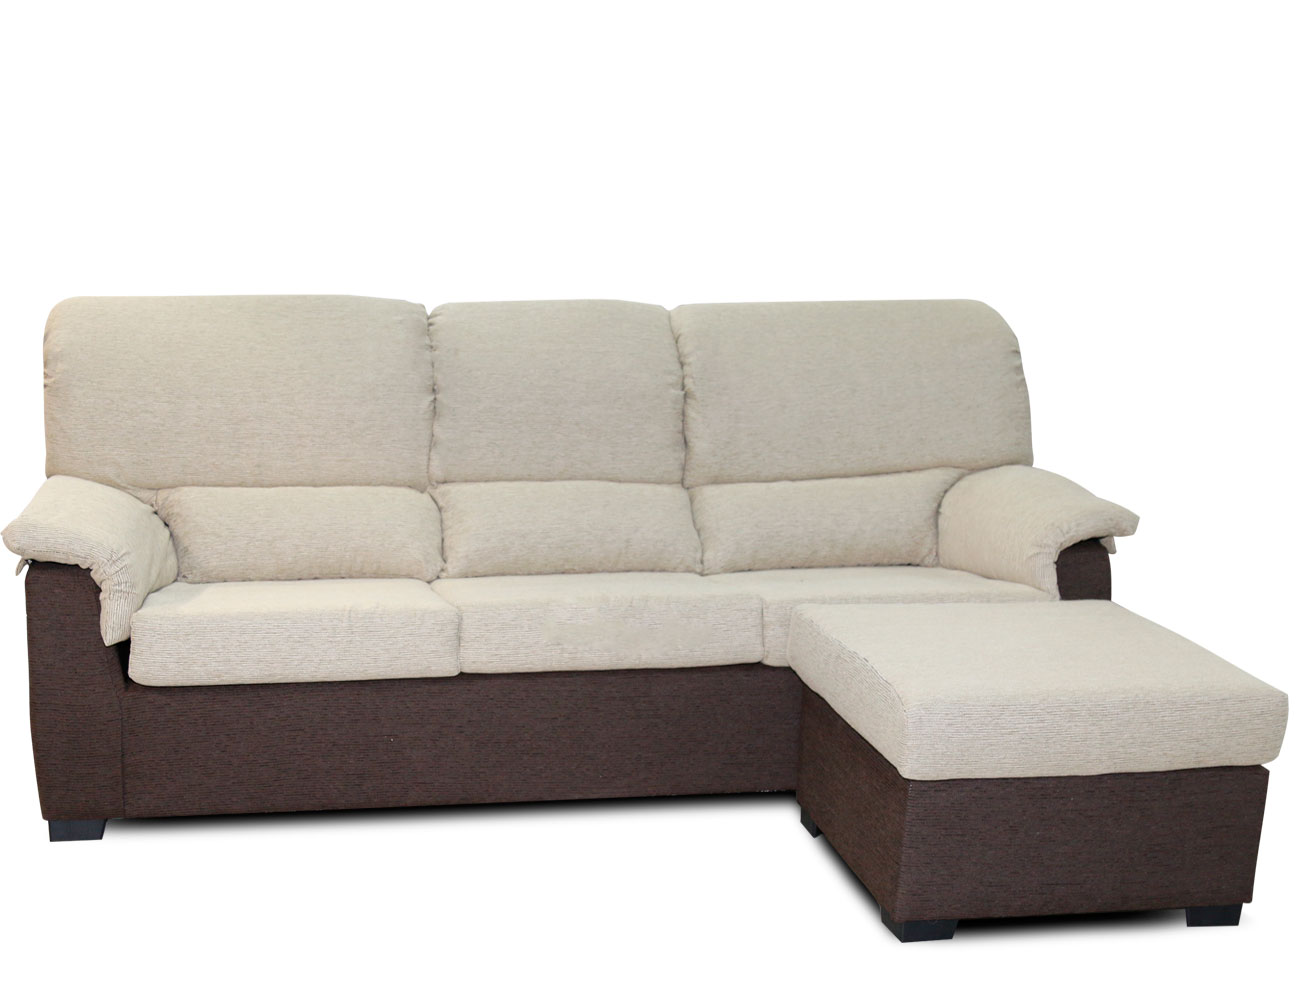 Sof chaiselongue barato con puf reversible 15285 for Sofas originales baratos